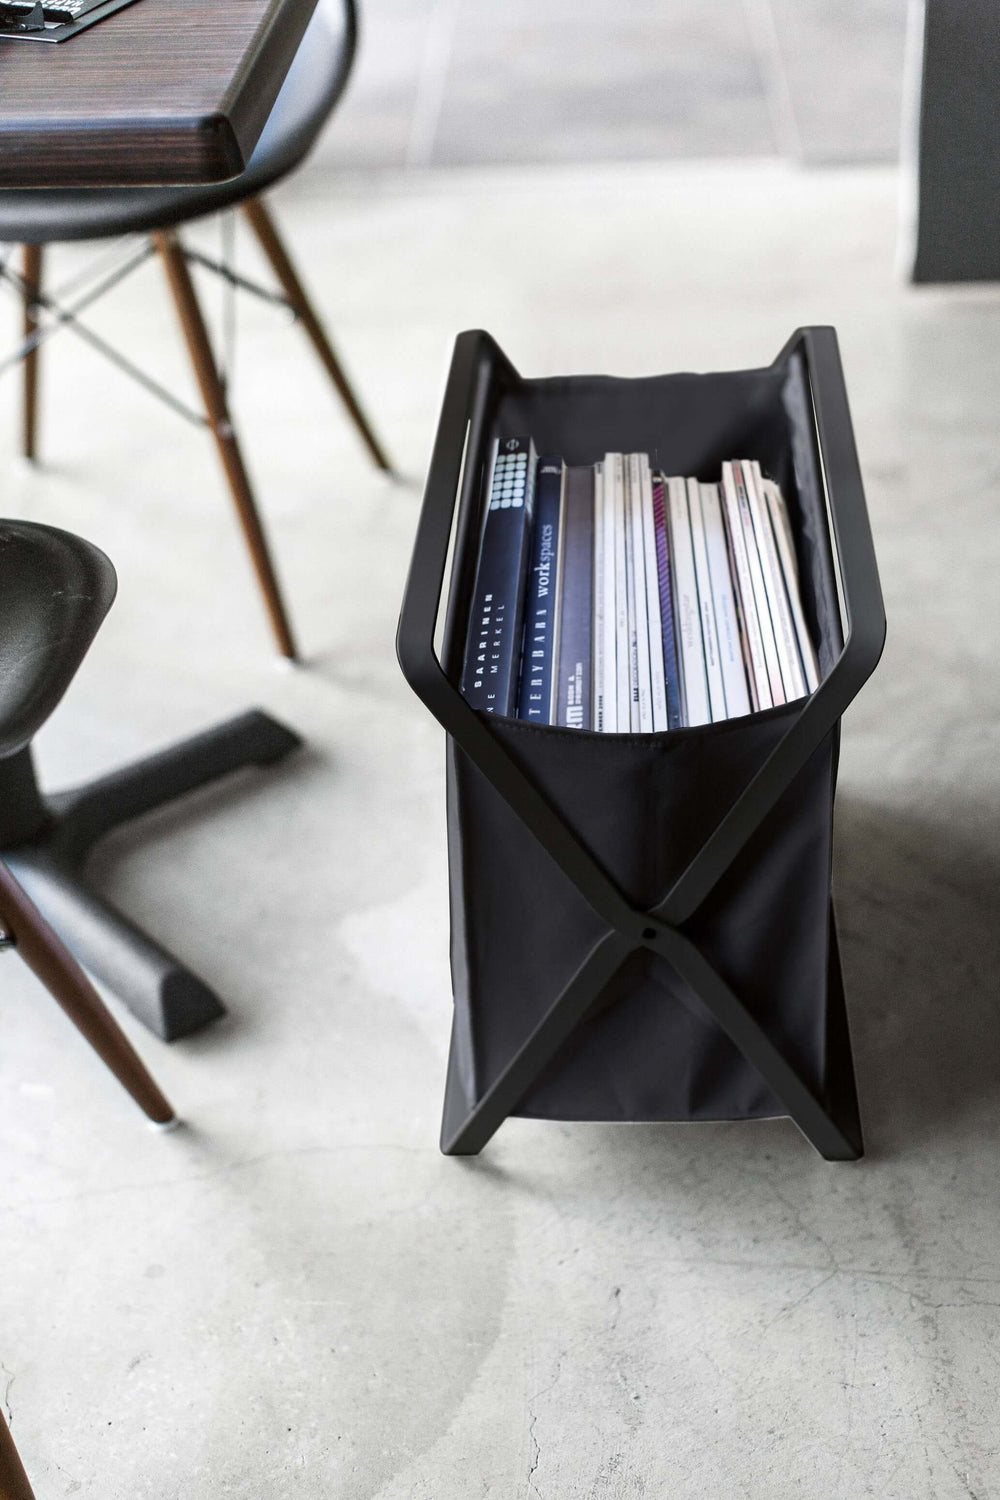 Black Yamazaki Storage Hamper next to a table and chair, storing books and magazines